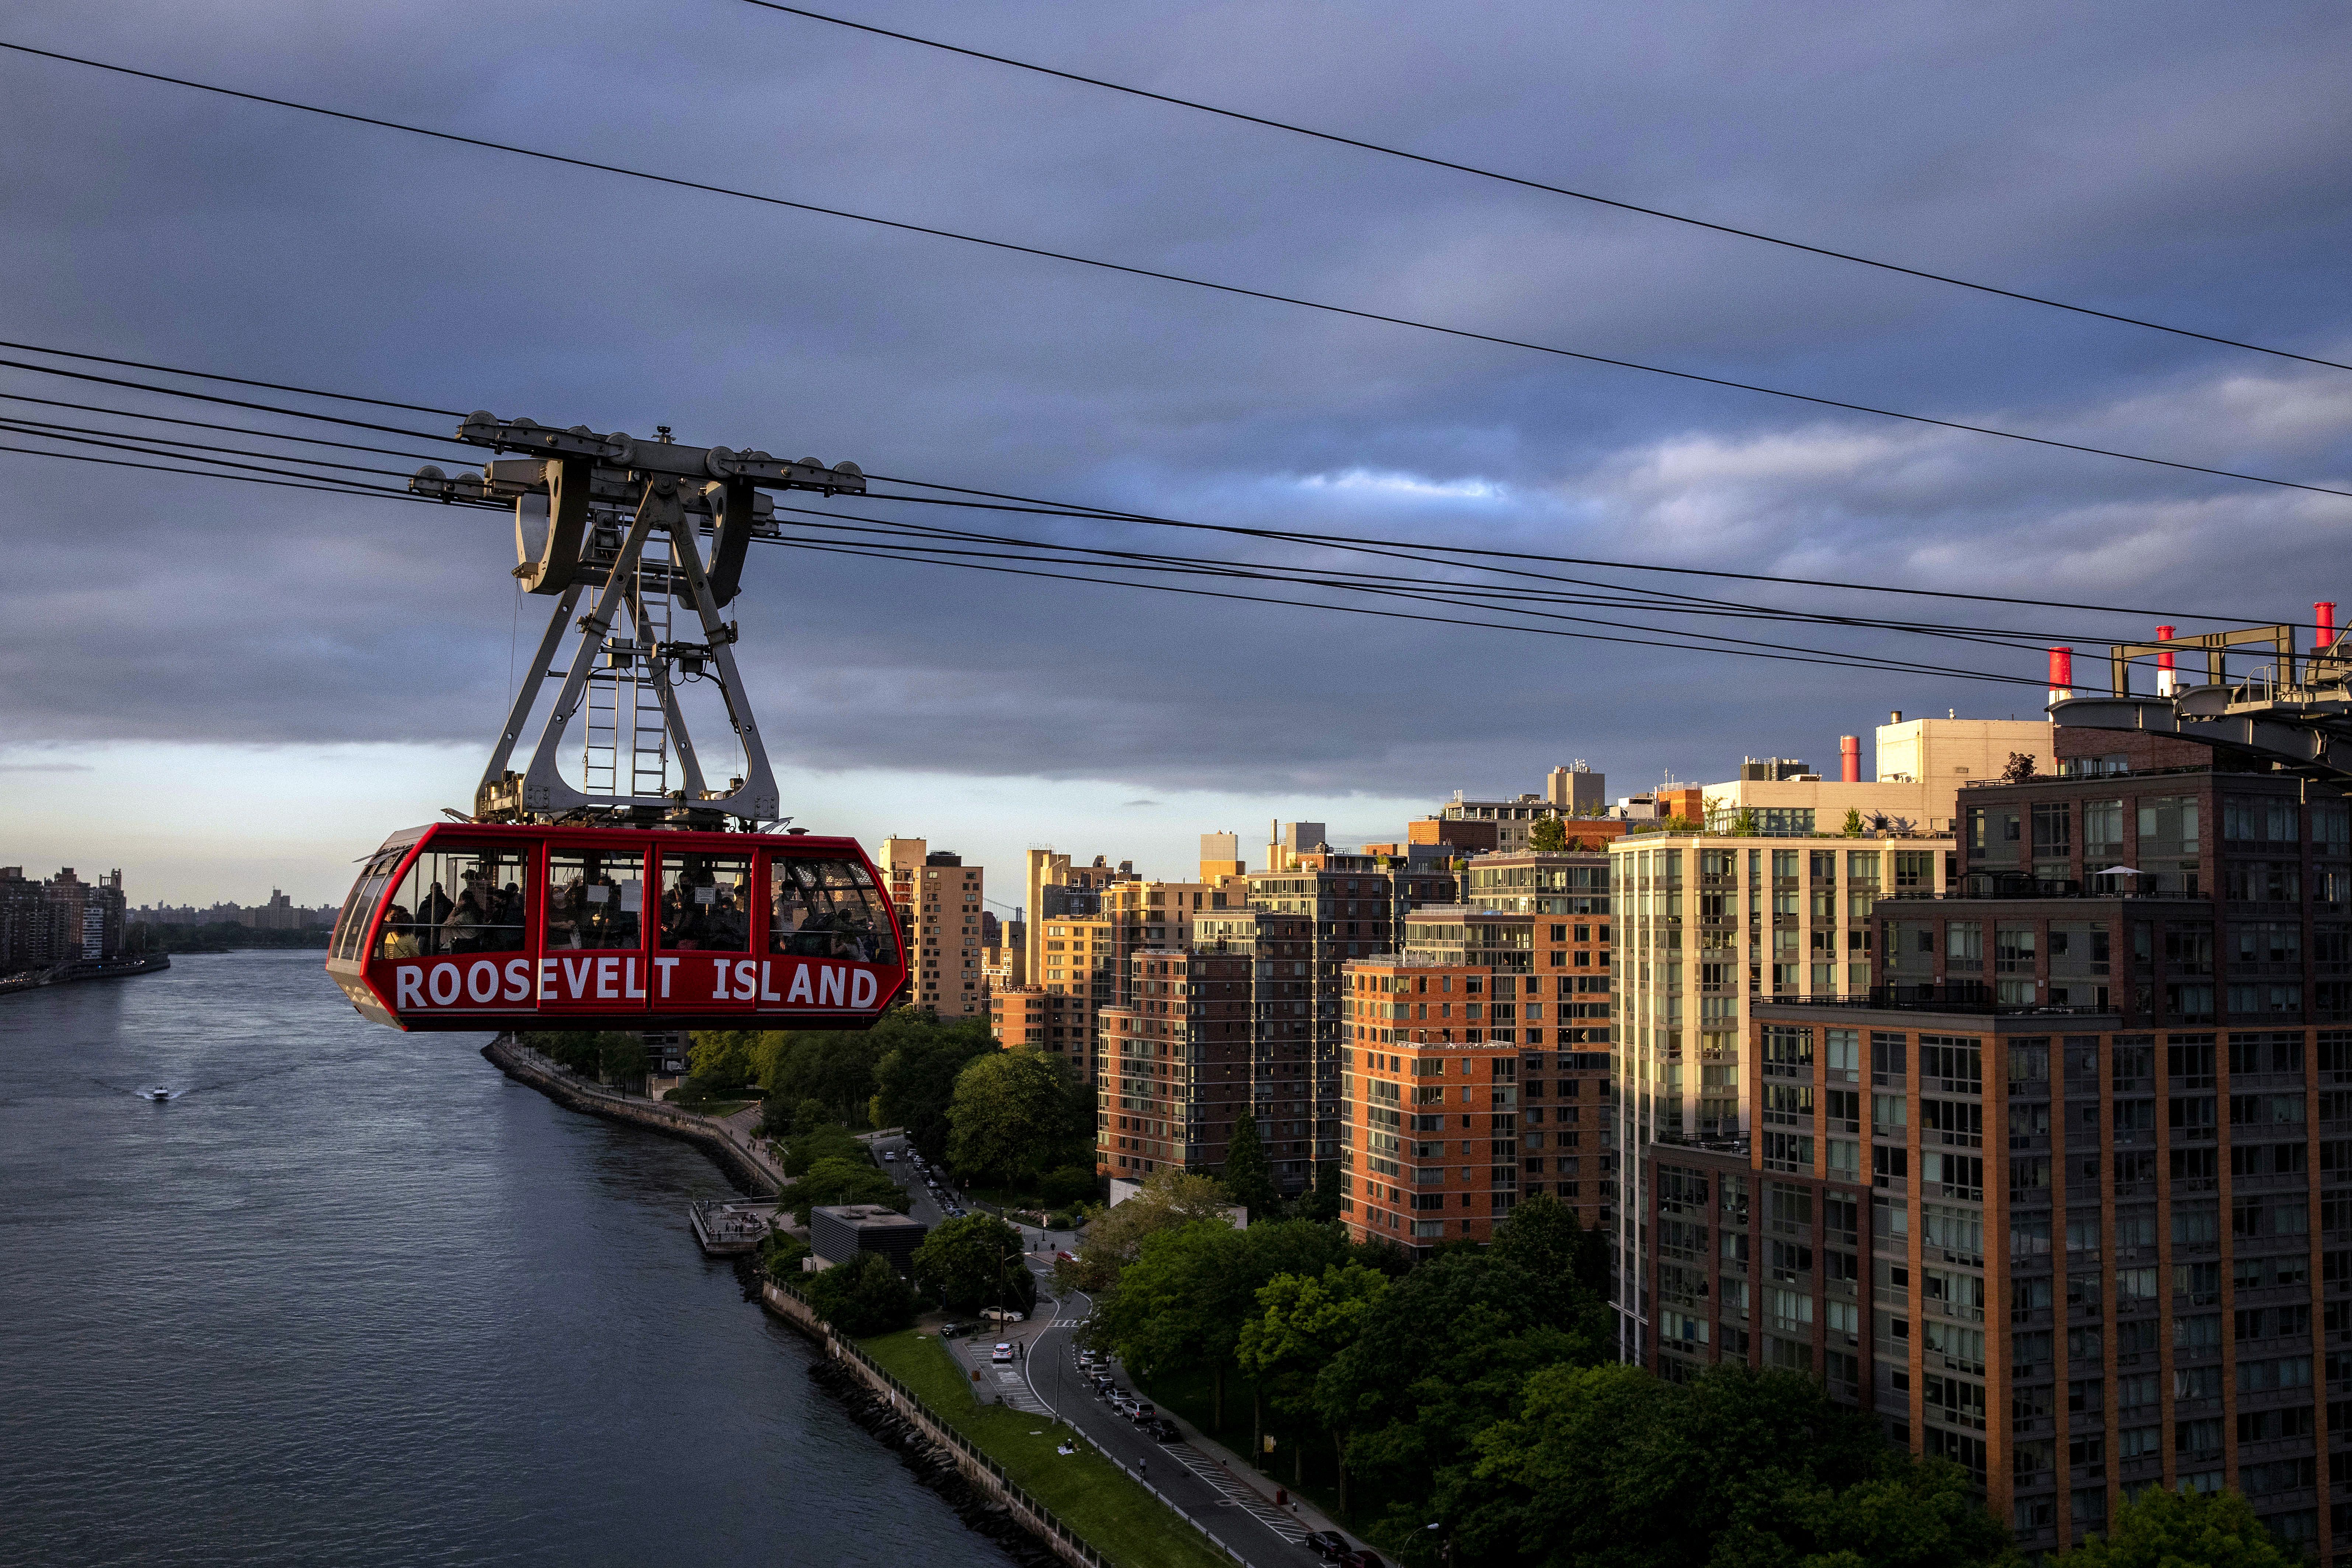 The tram to Roosevelt Island crosses the East River from Manhattan on Monday, June 12, 2021.